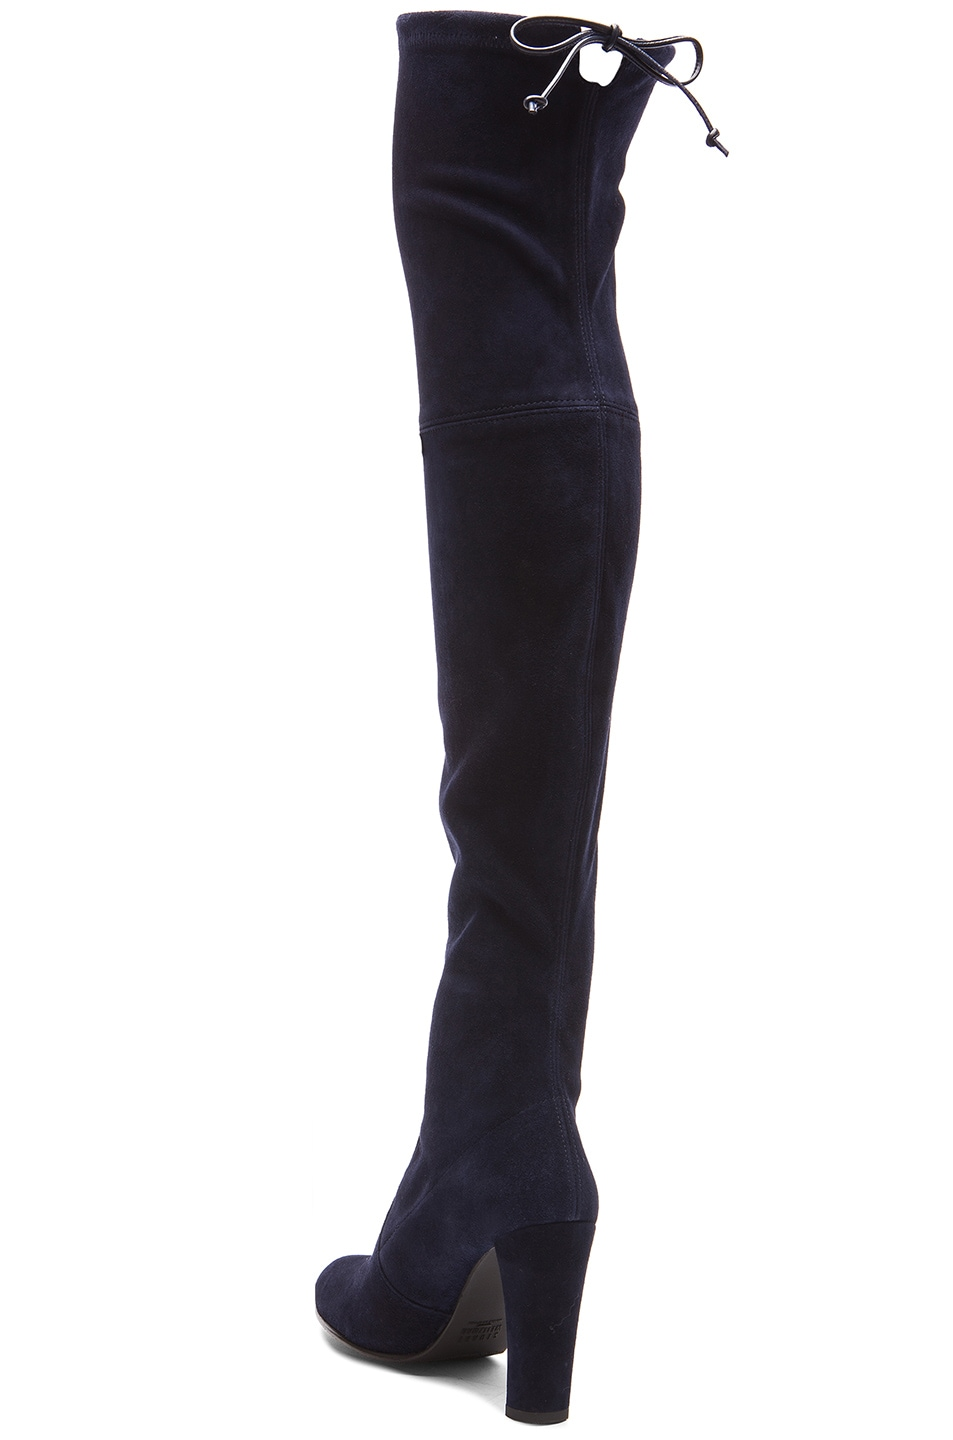 Image 3 of Stuart Weitzman Highland Suede Boots in Nice Blue Suede